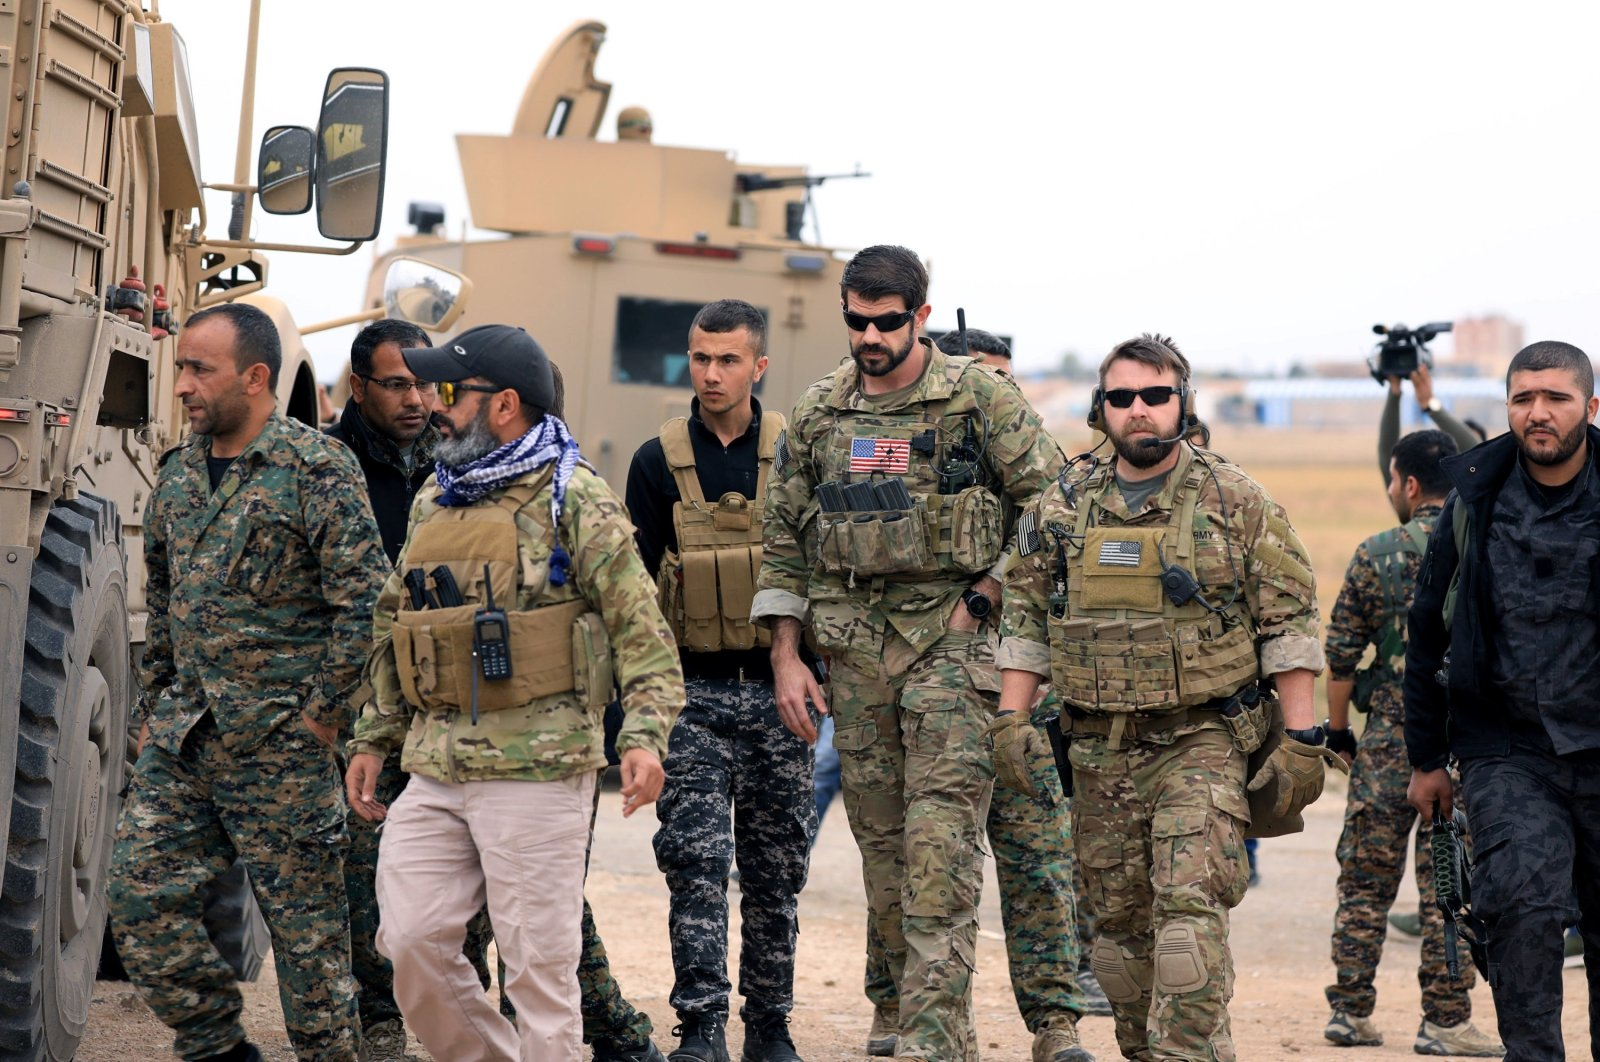 YPG terrorists and U.S. troops are seen together during a joint patrol near the Turkish border in Hassakeh, Syria, Nov. 4, 2018. (Reuters Photo)